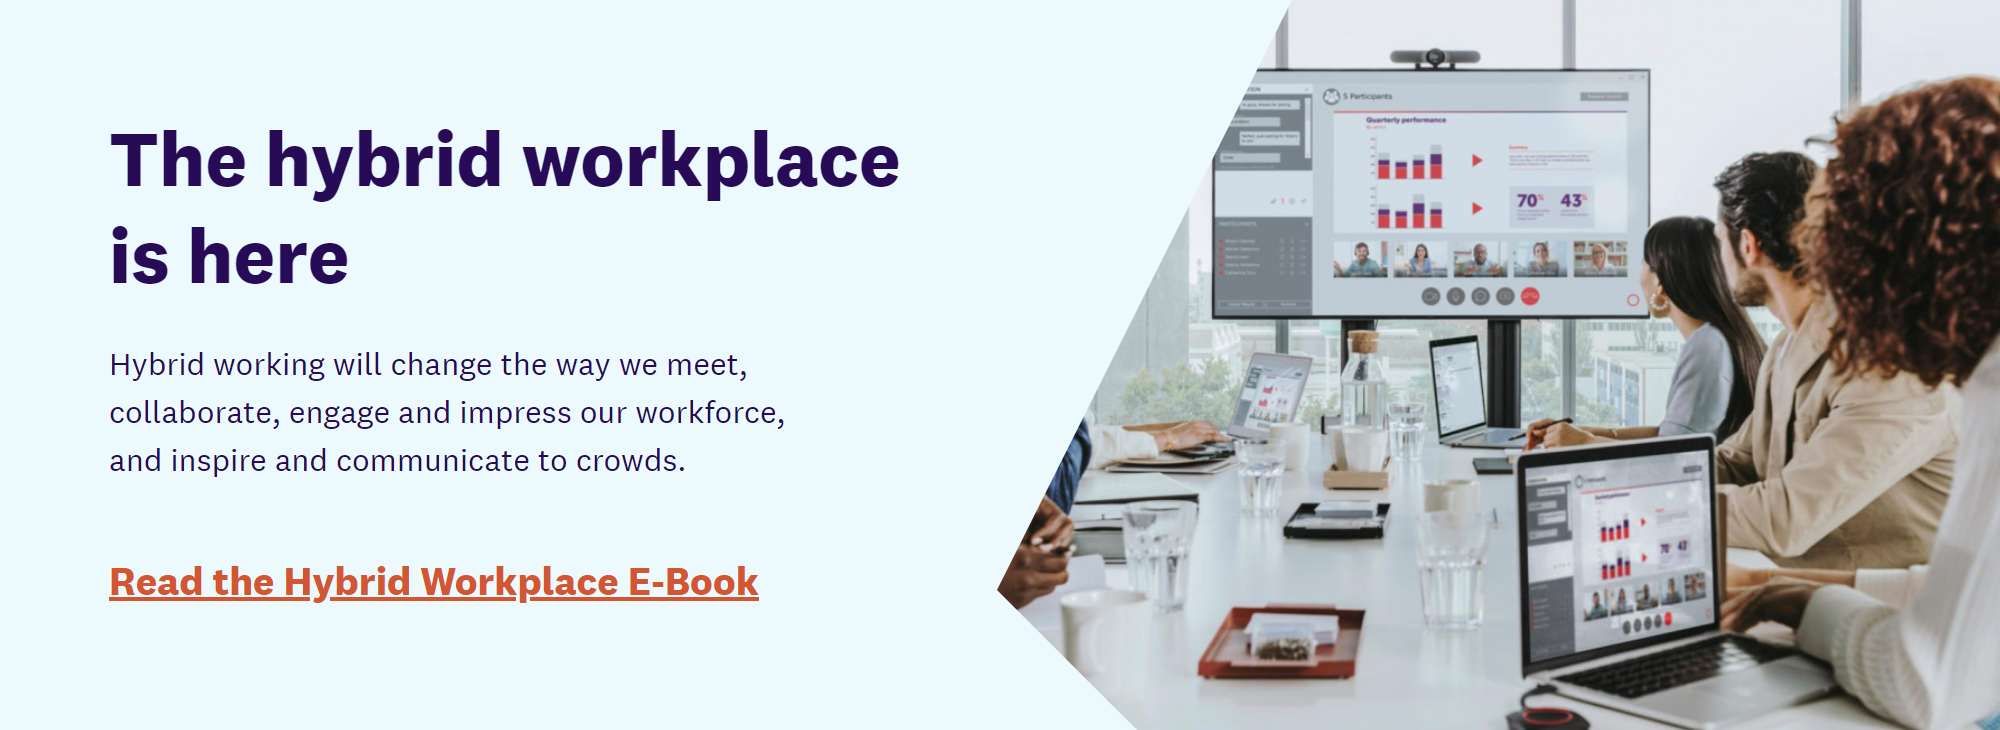 Hybrid Workplace E-Book